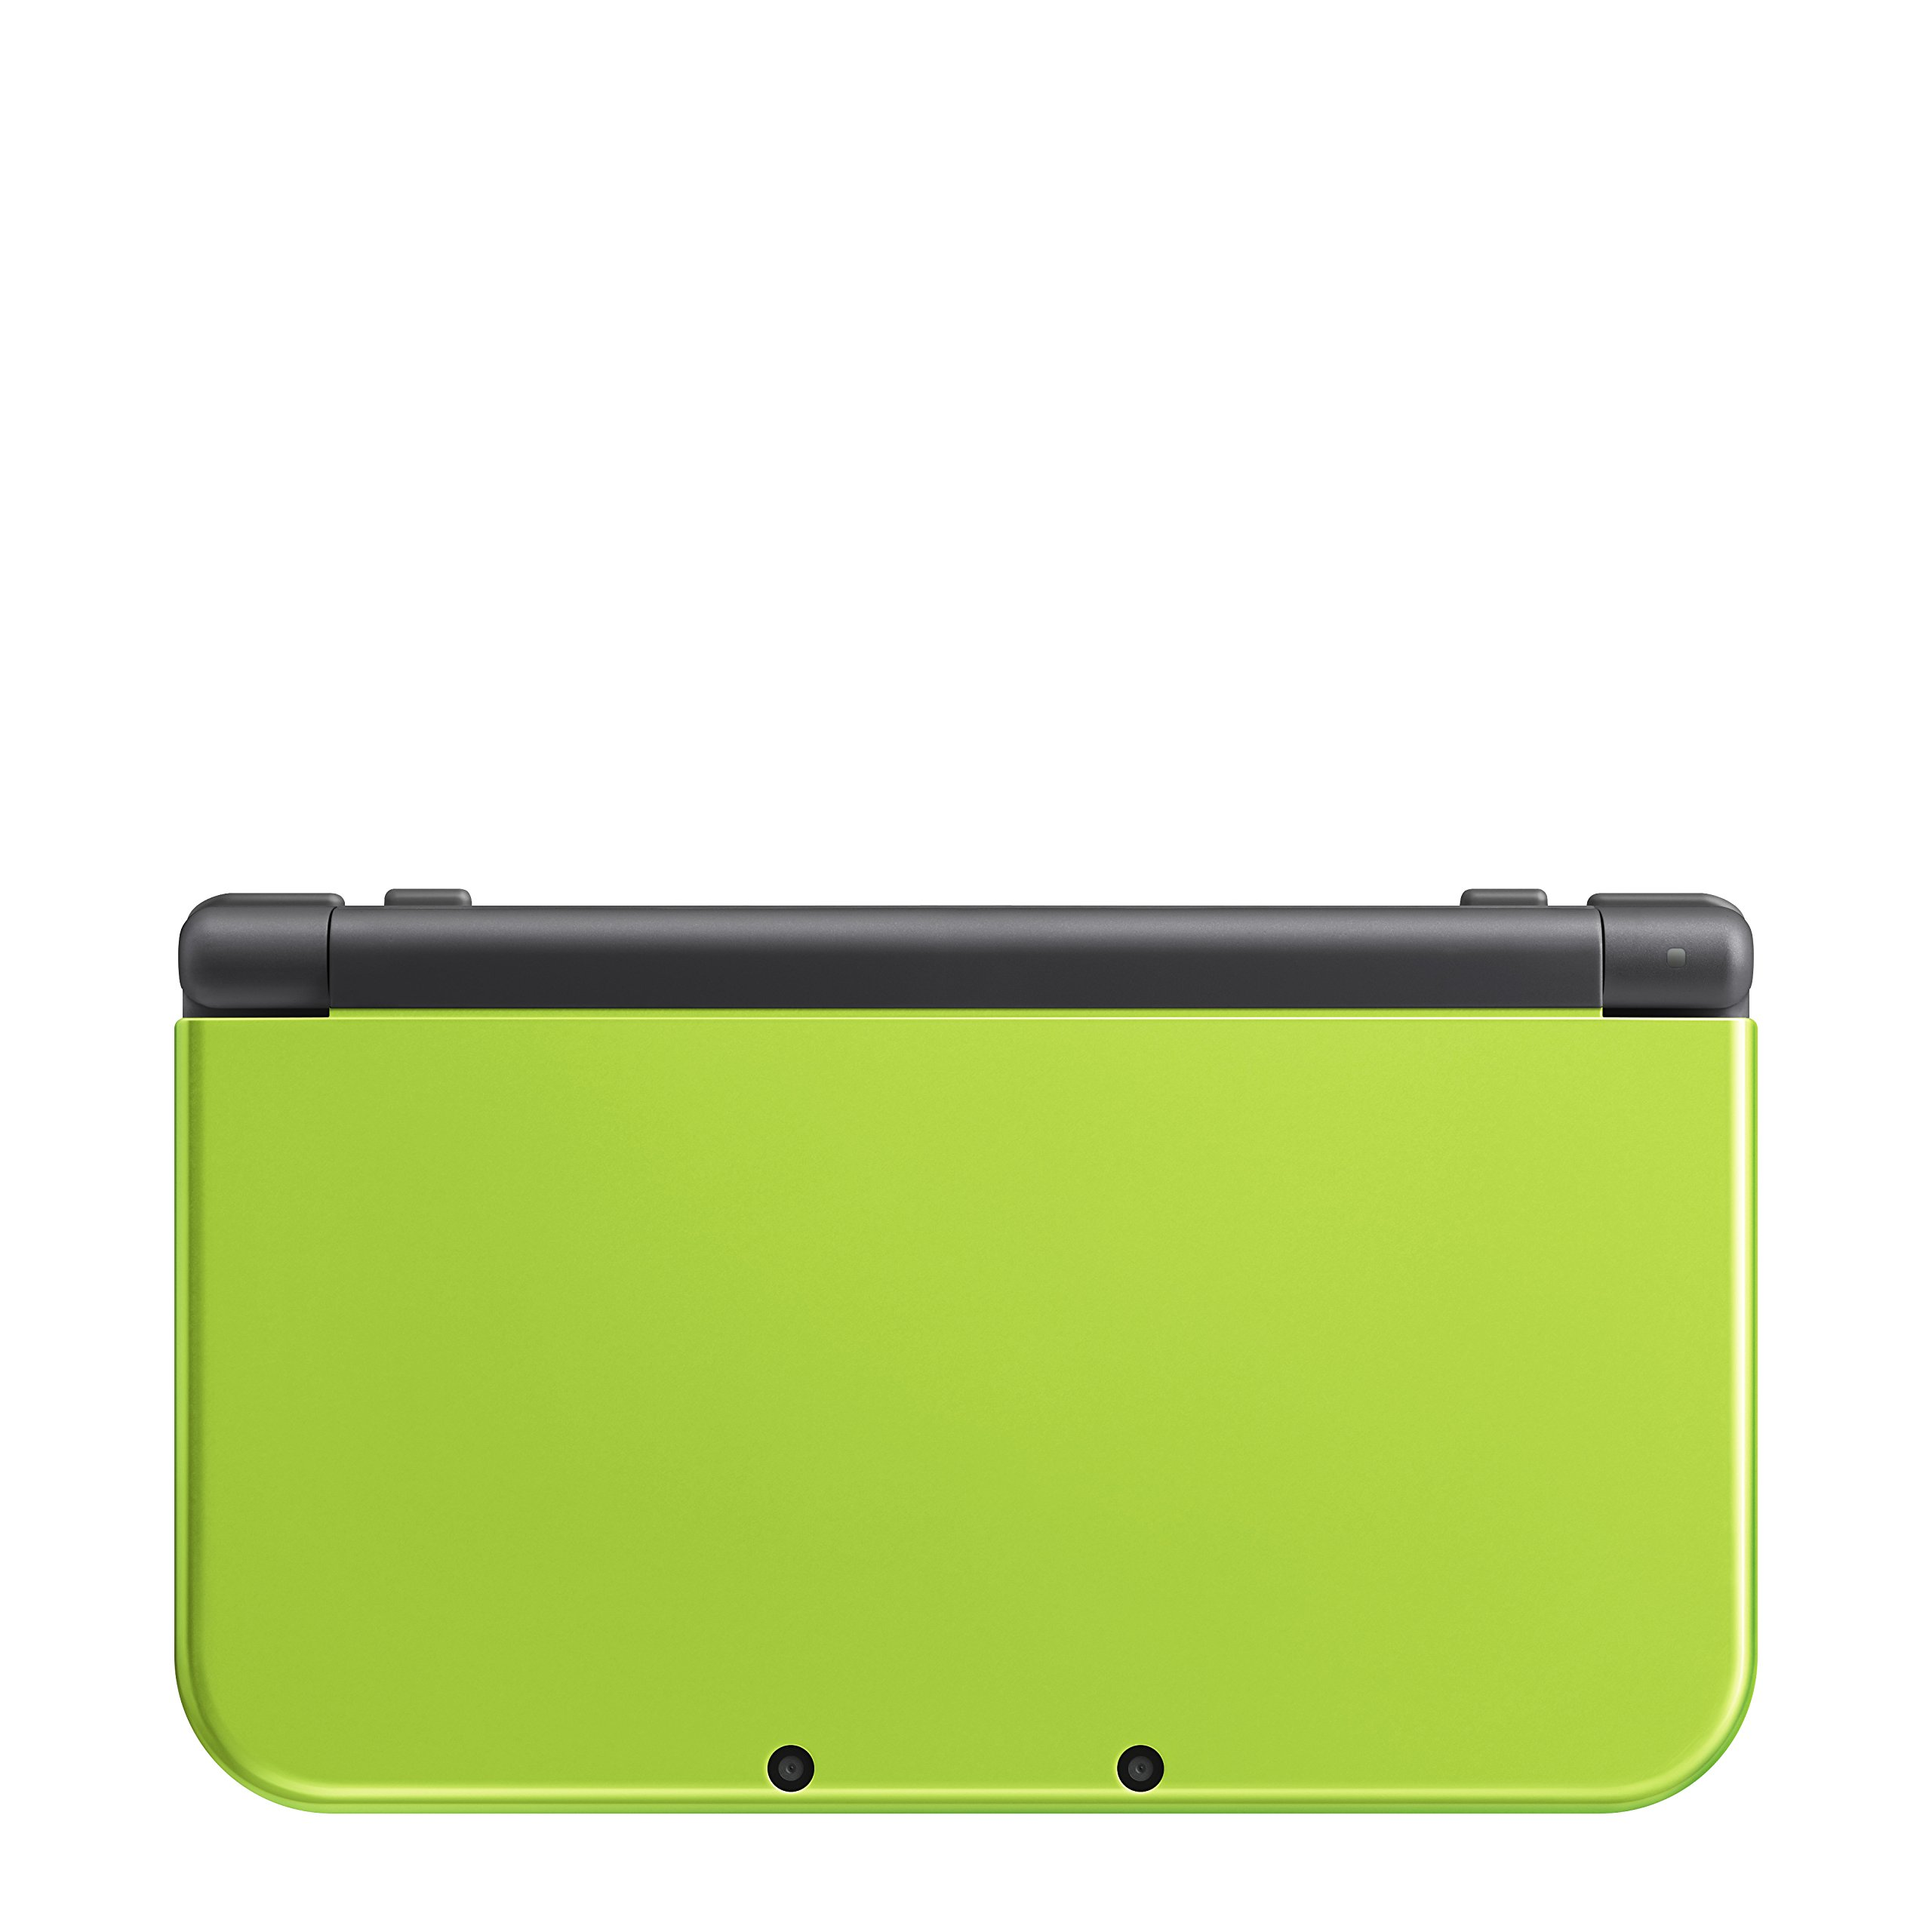 Nintendo New 3DS XL - Lime Green Special Edition [Discontinued] by Nintendo (Image #5)